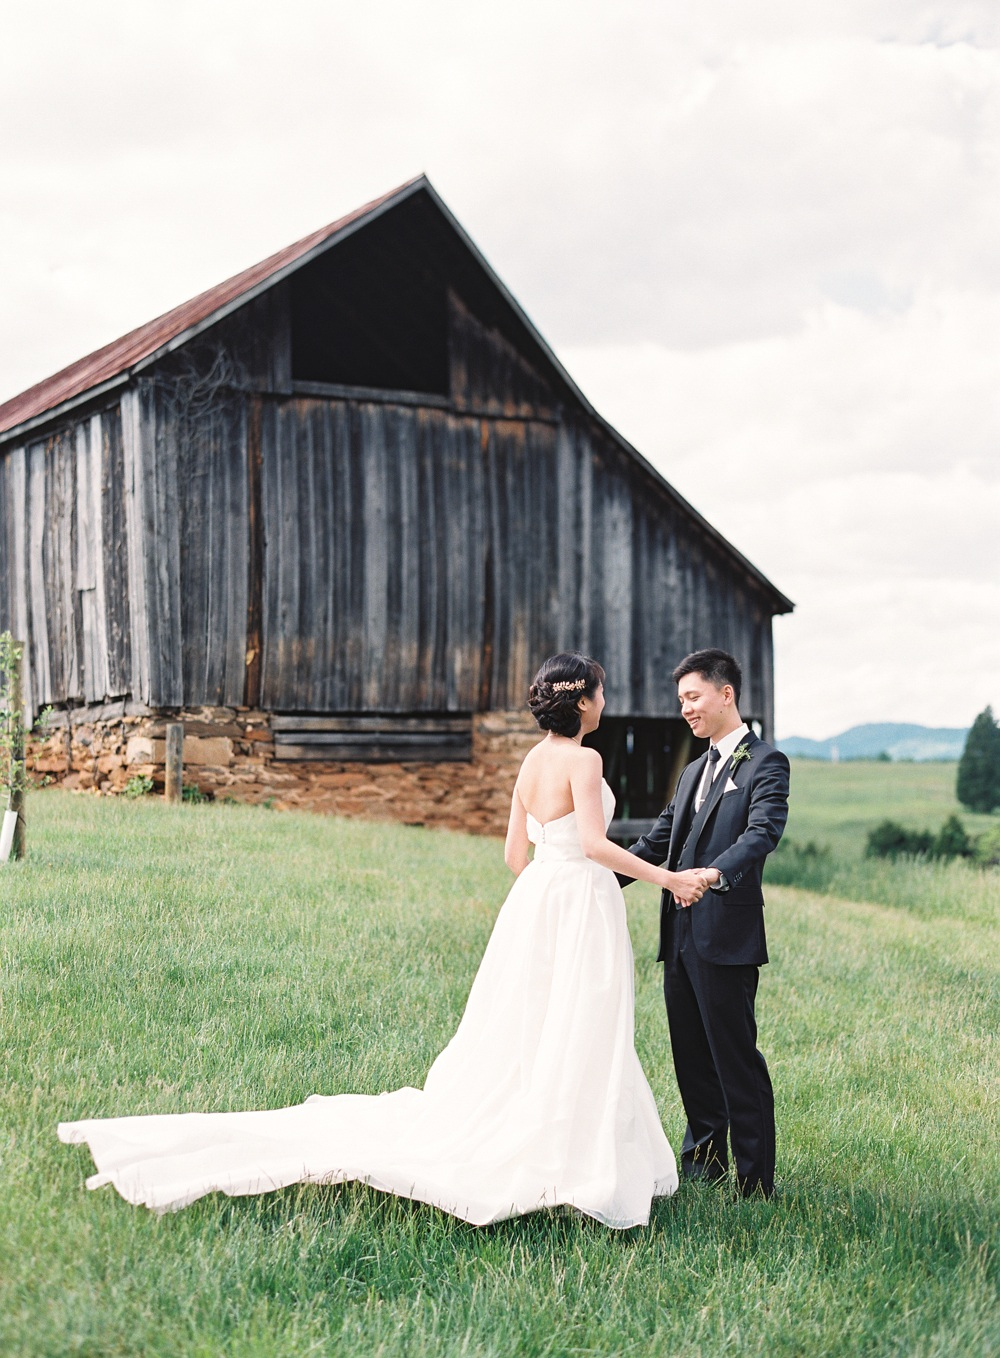 virginia-wedding-9-06152015-ky